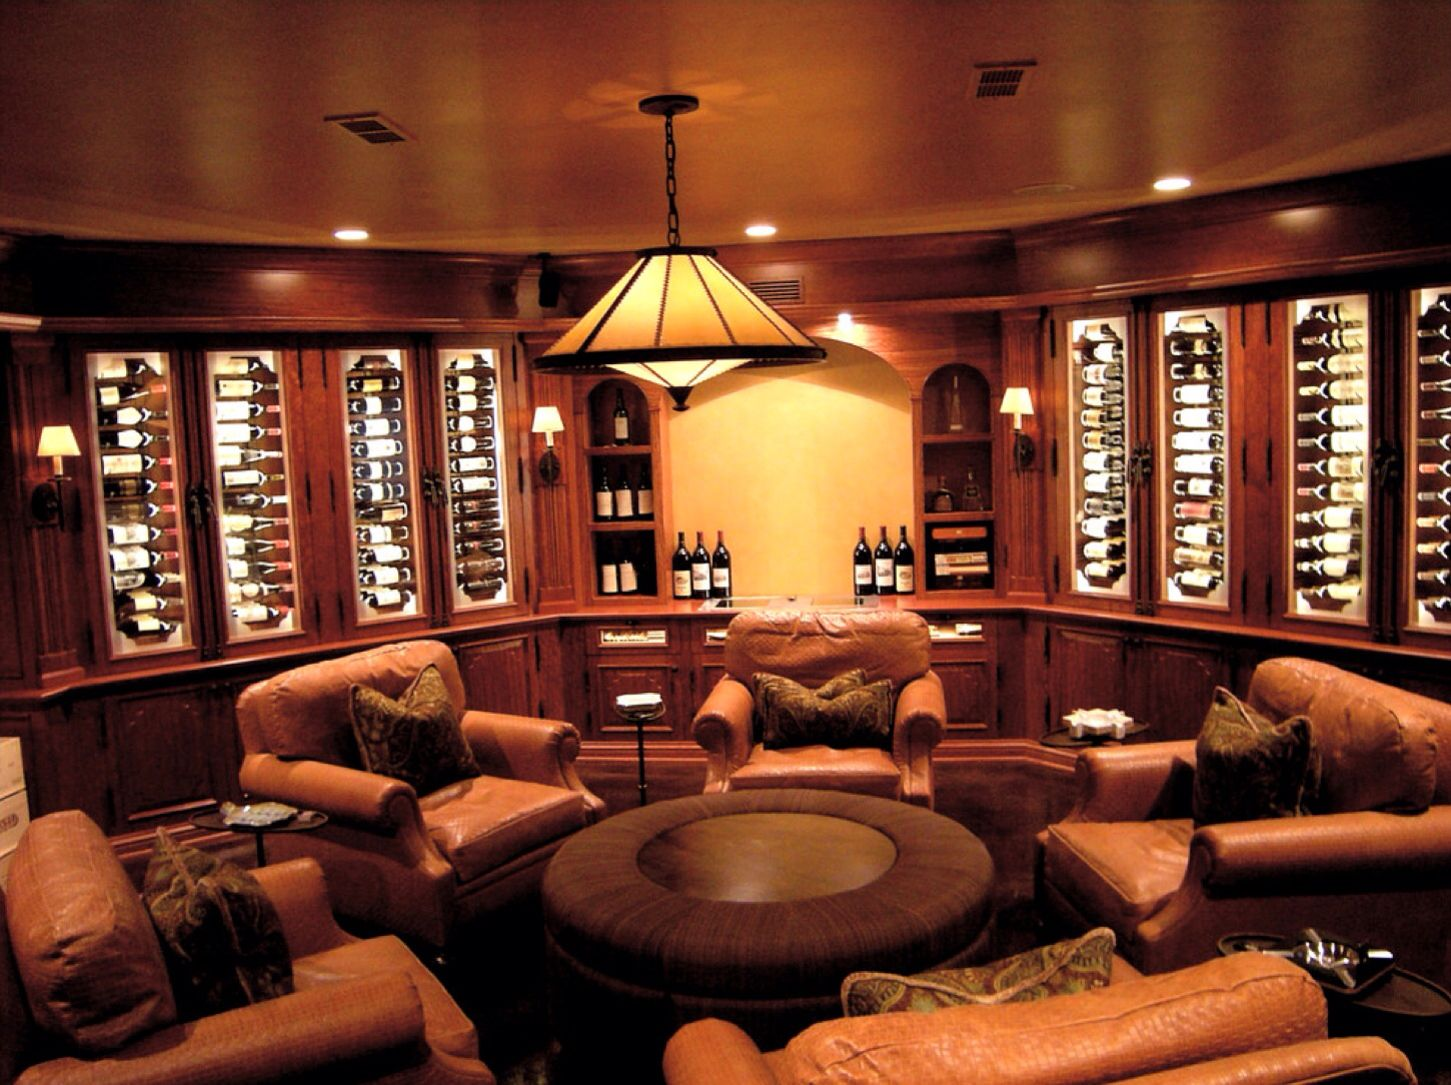 Perfect man cave decorating ideas to pull off a unique Wine shop decoration